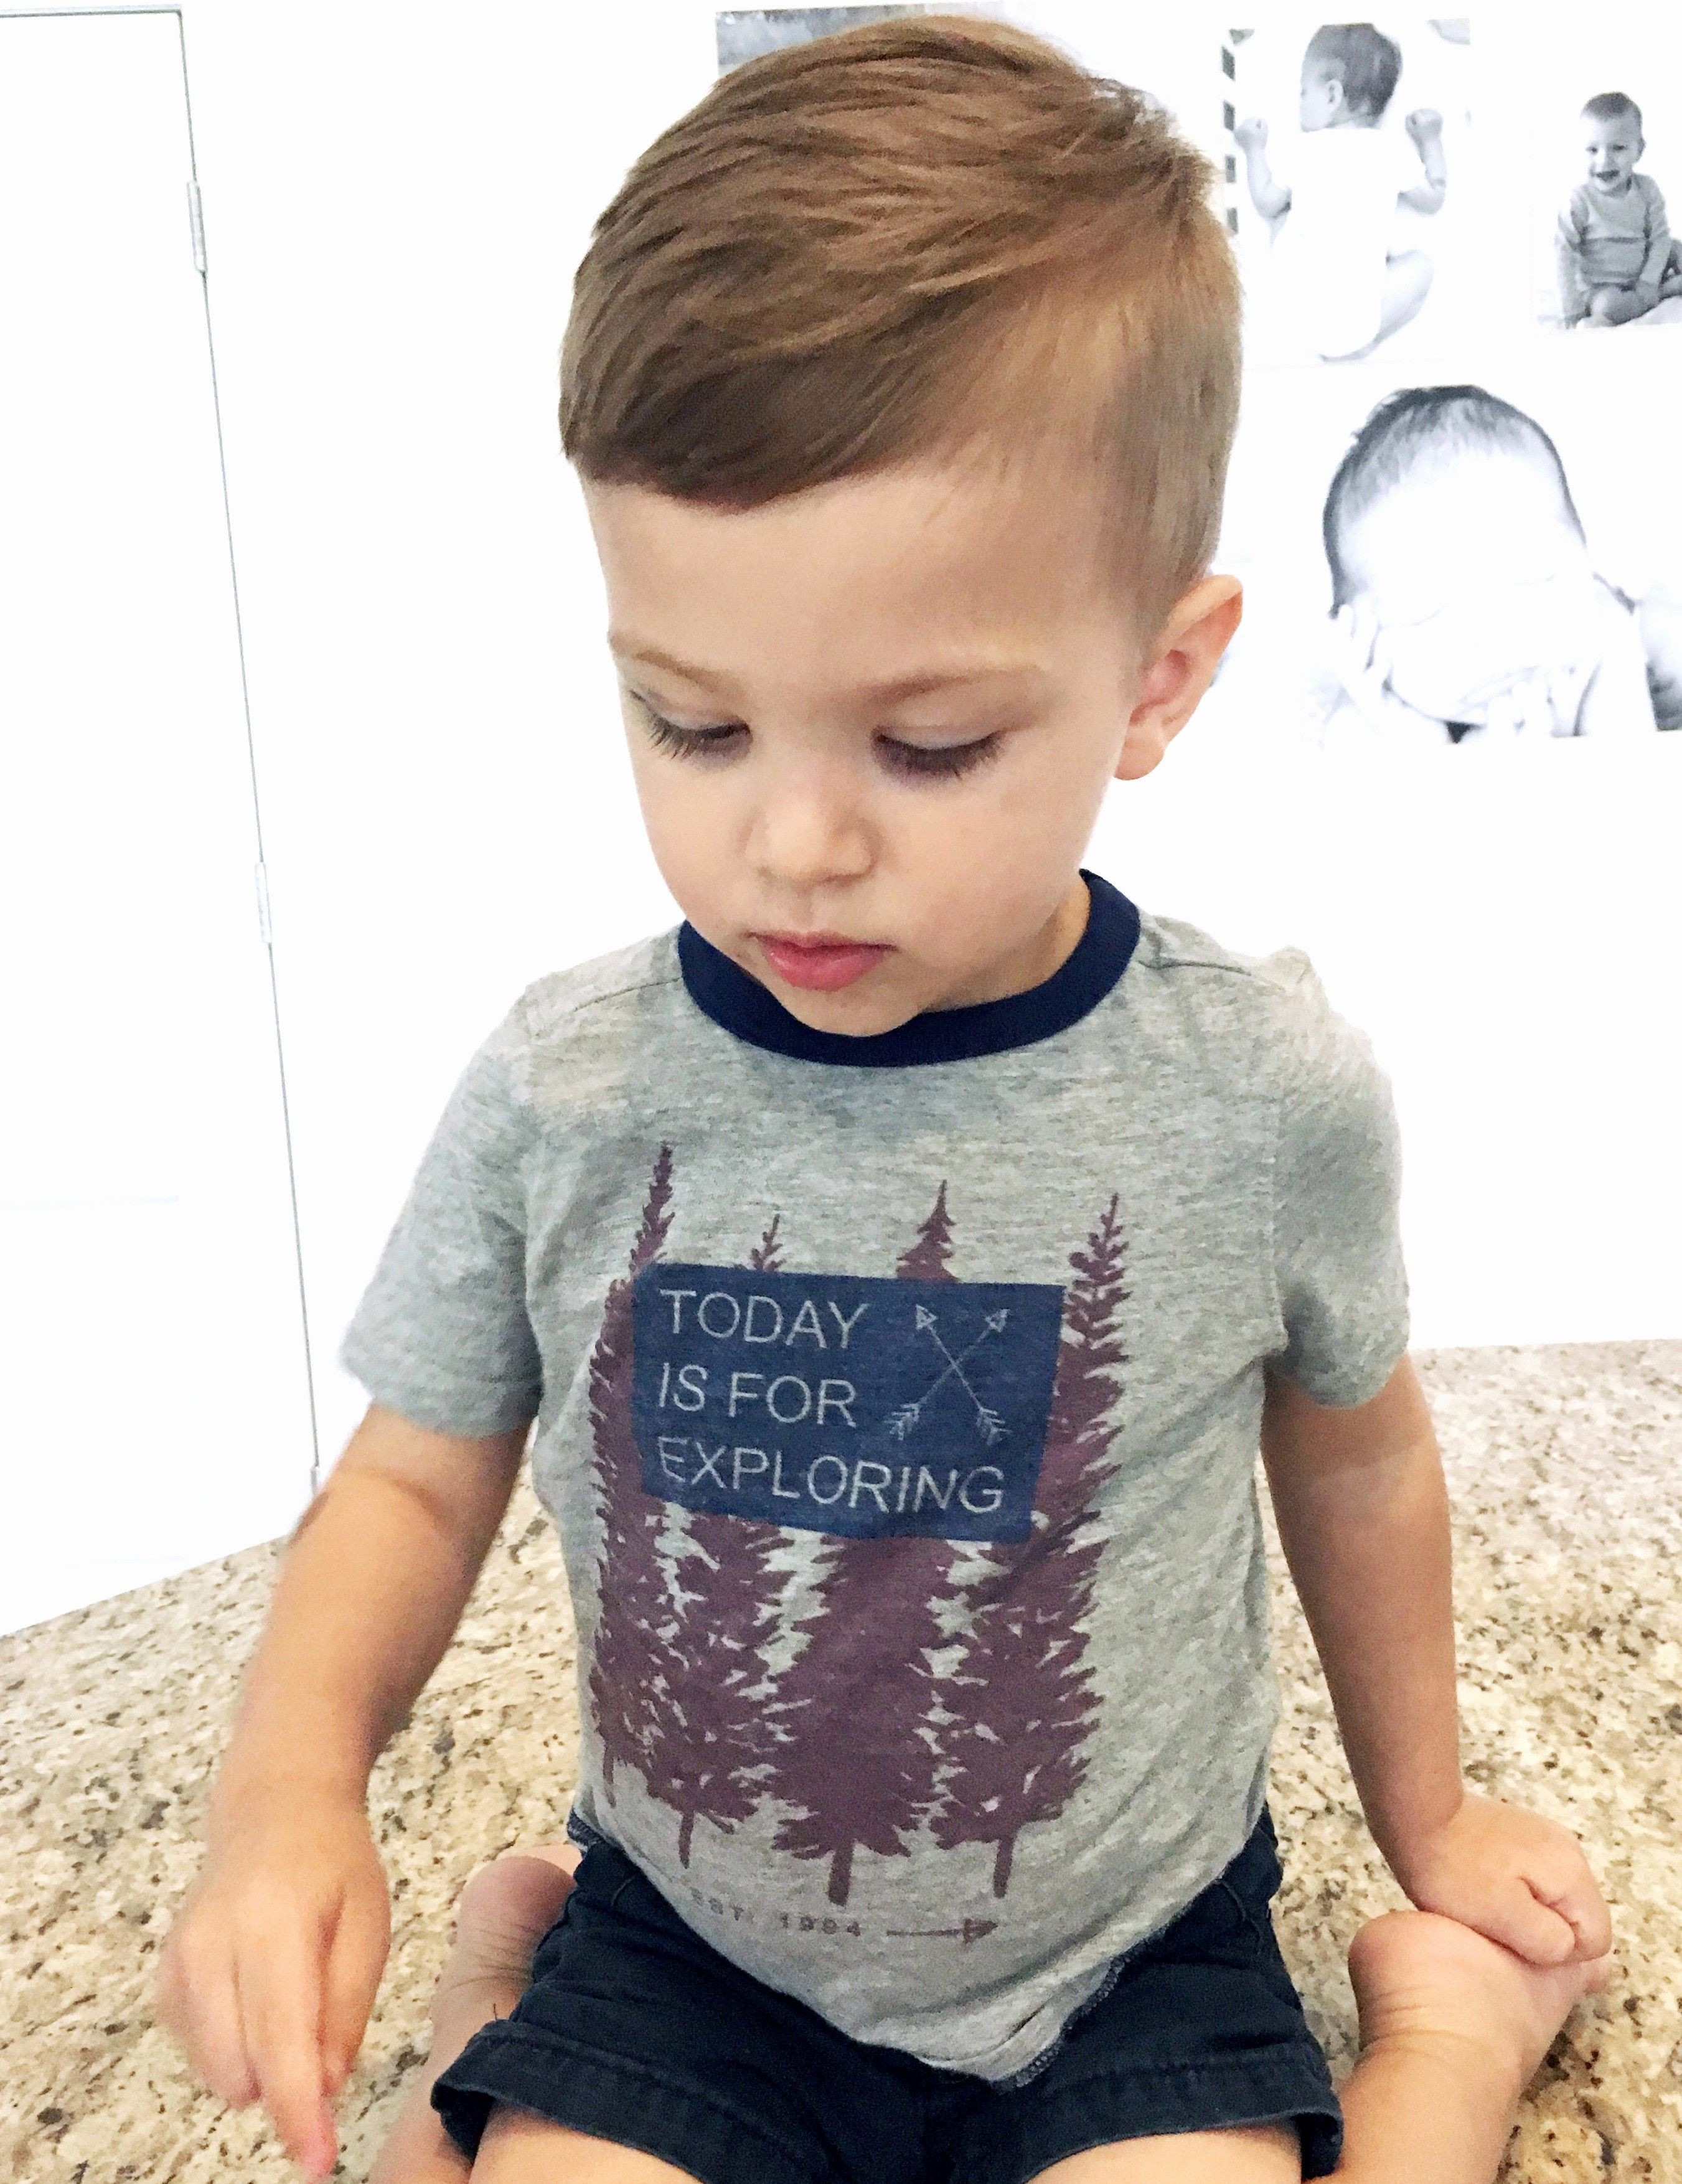 Best ideas about 3 Year Old Boys Haircuts . Save or Pin 3 Year Old Boy Haircut Styles haircut HaircutStyles Now.